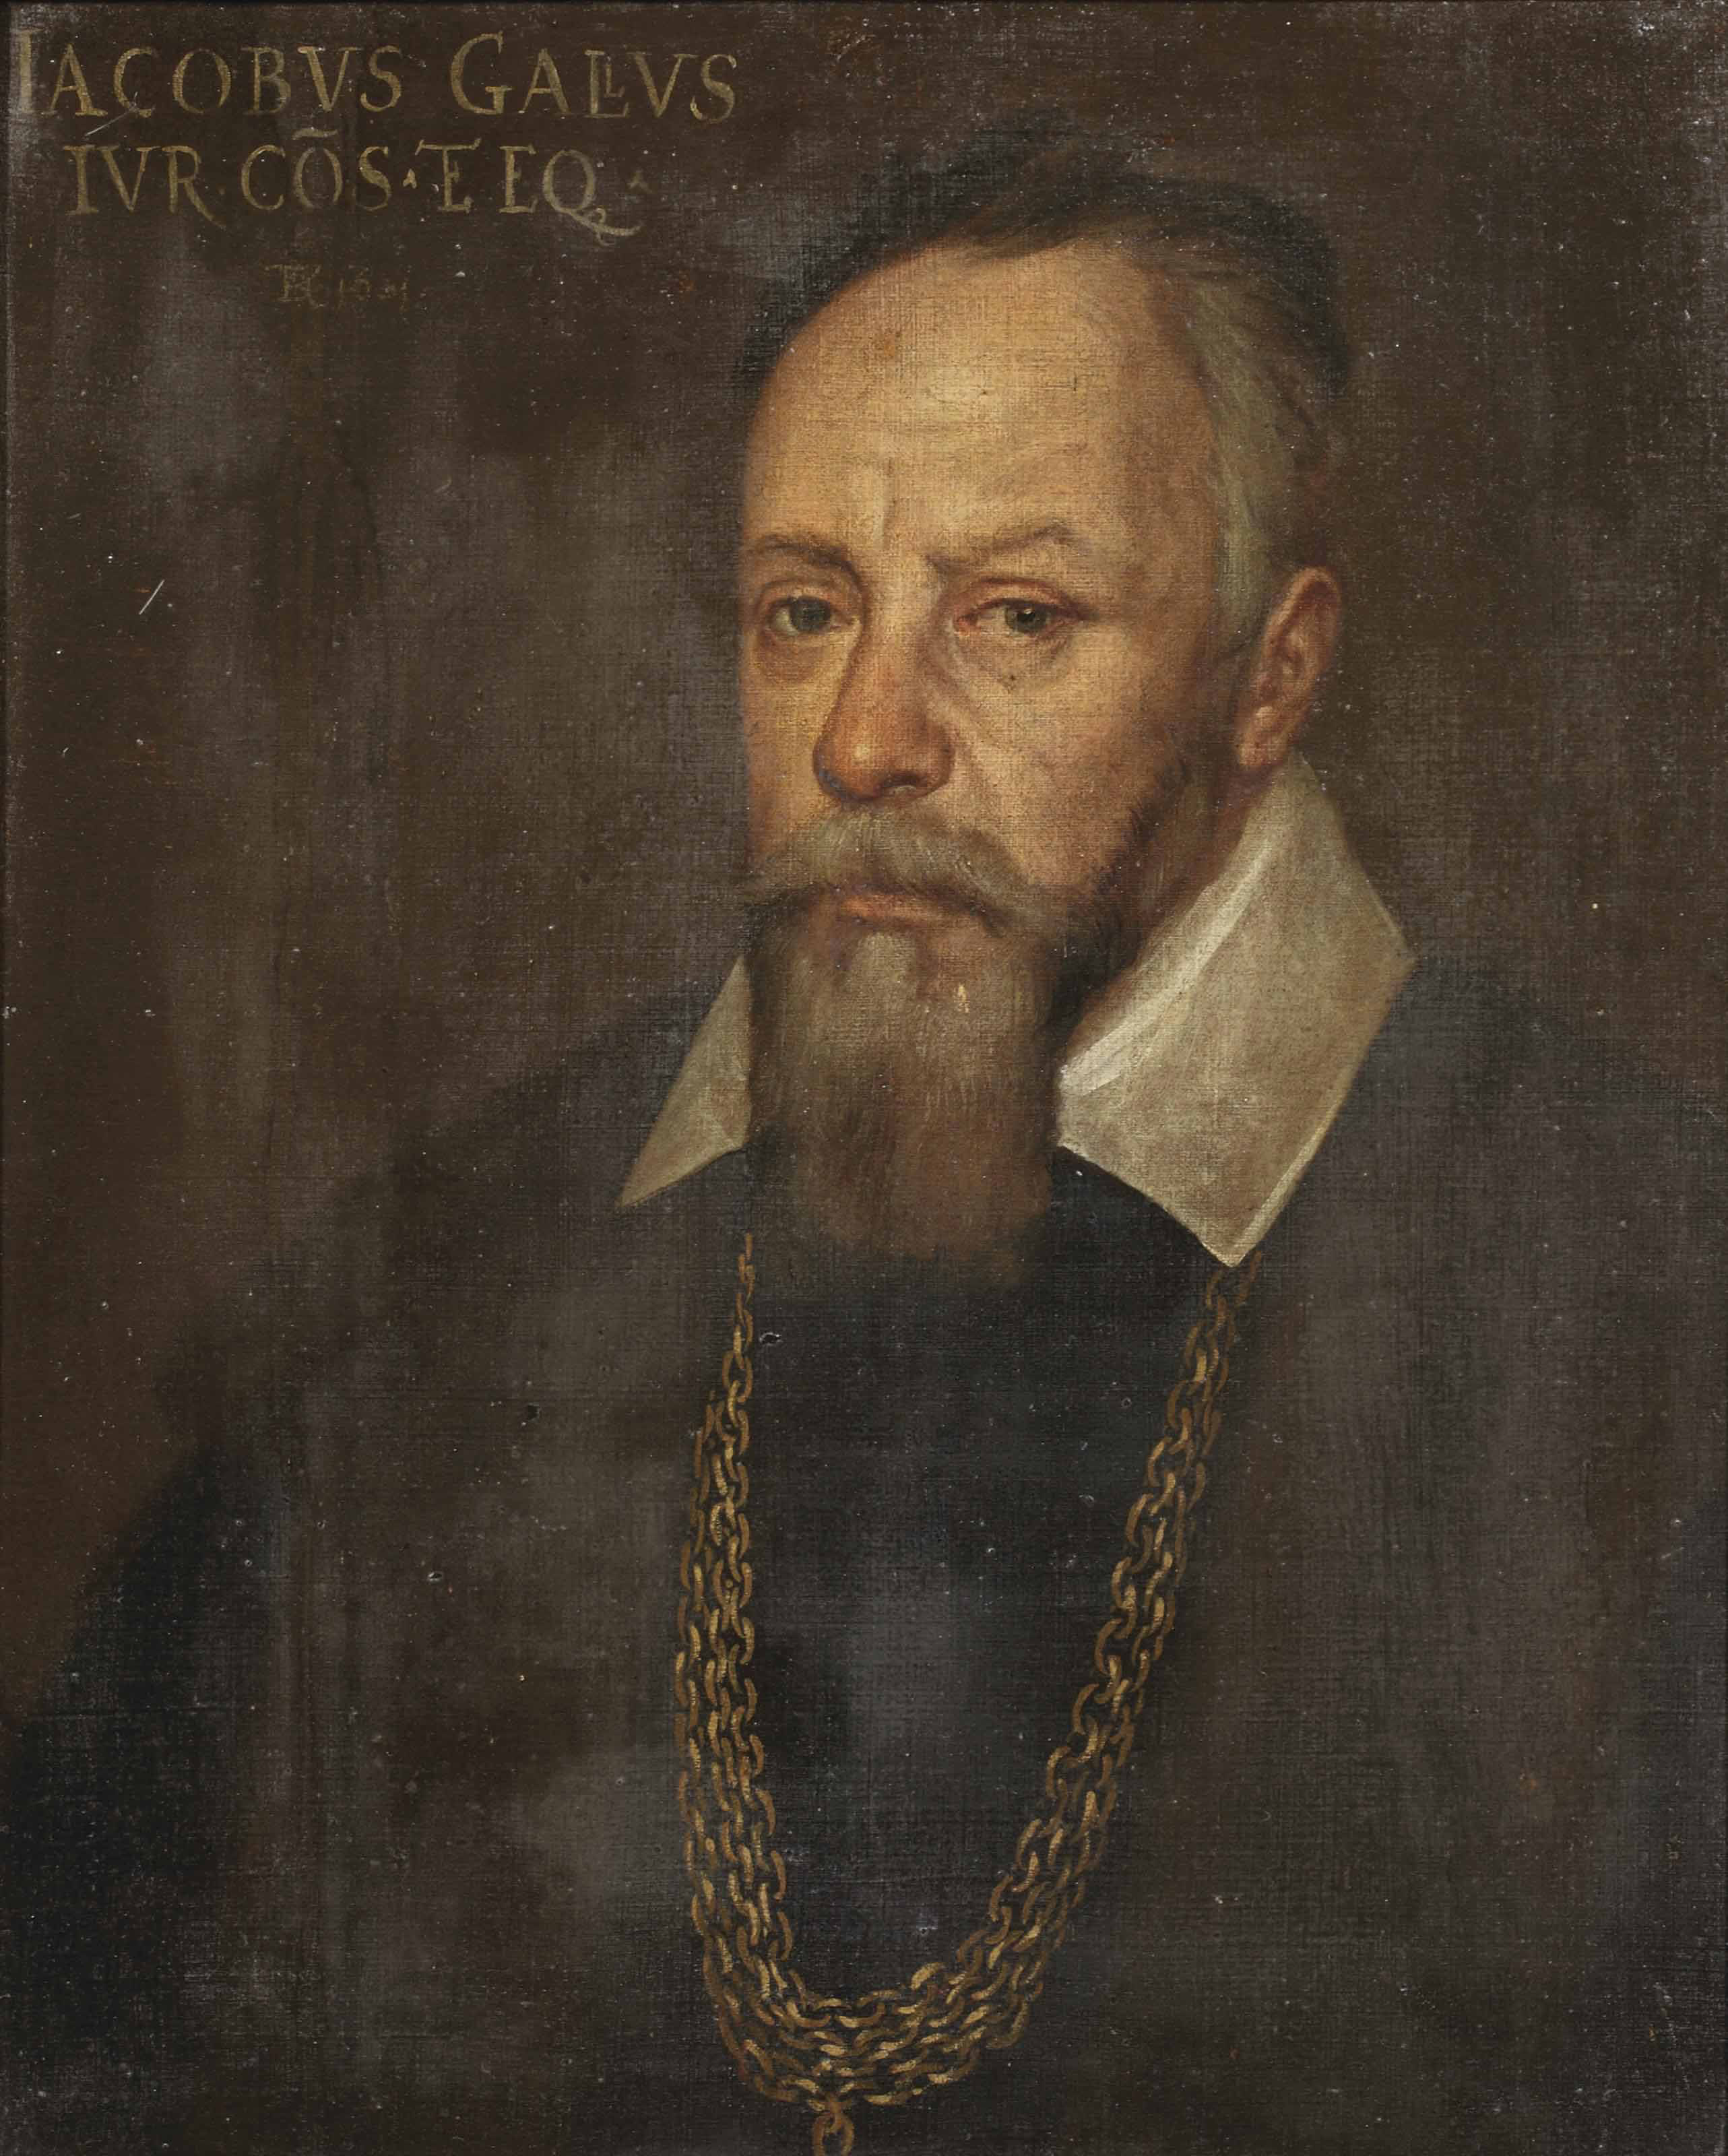 Portrait of Jacobus Gallus Neapolitanus (Naples 1552-1618 Padua), half-length, in a black costume with a white collar, wearing a gold chain